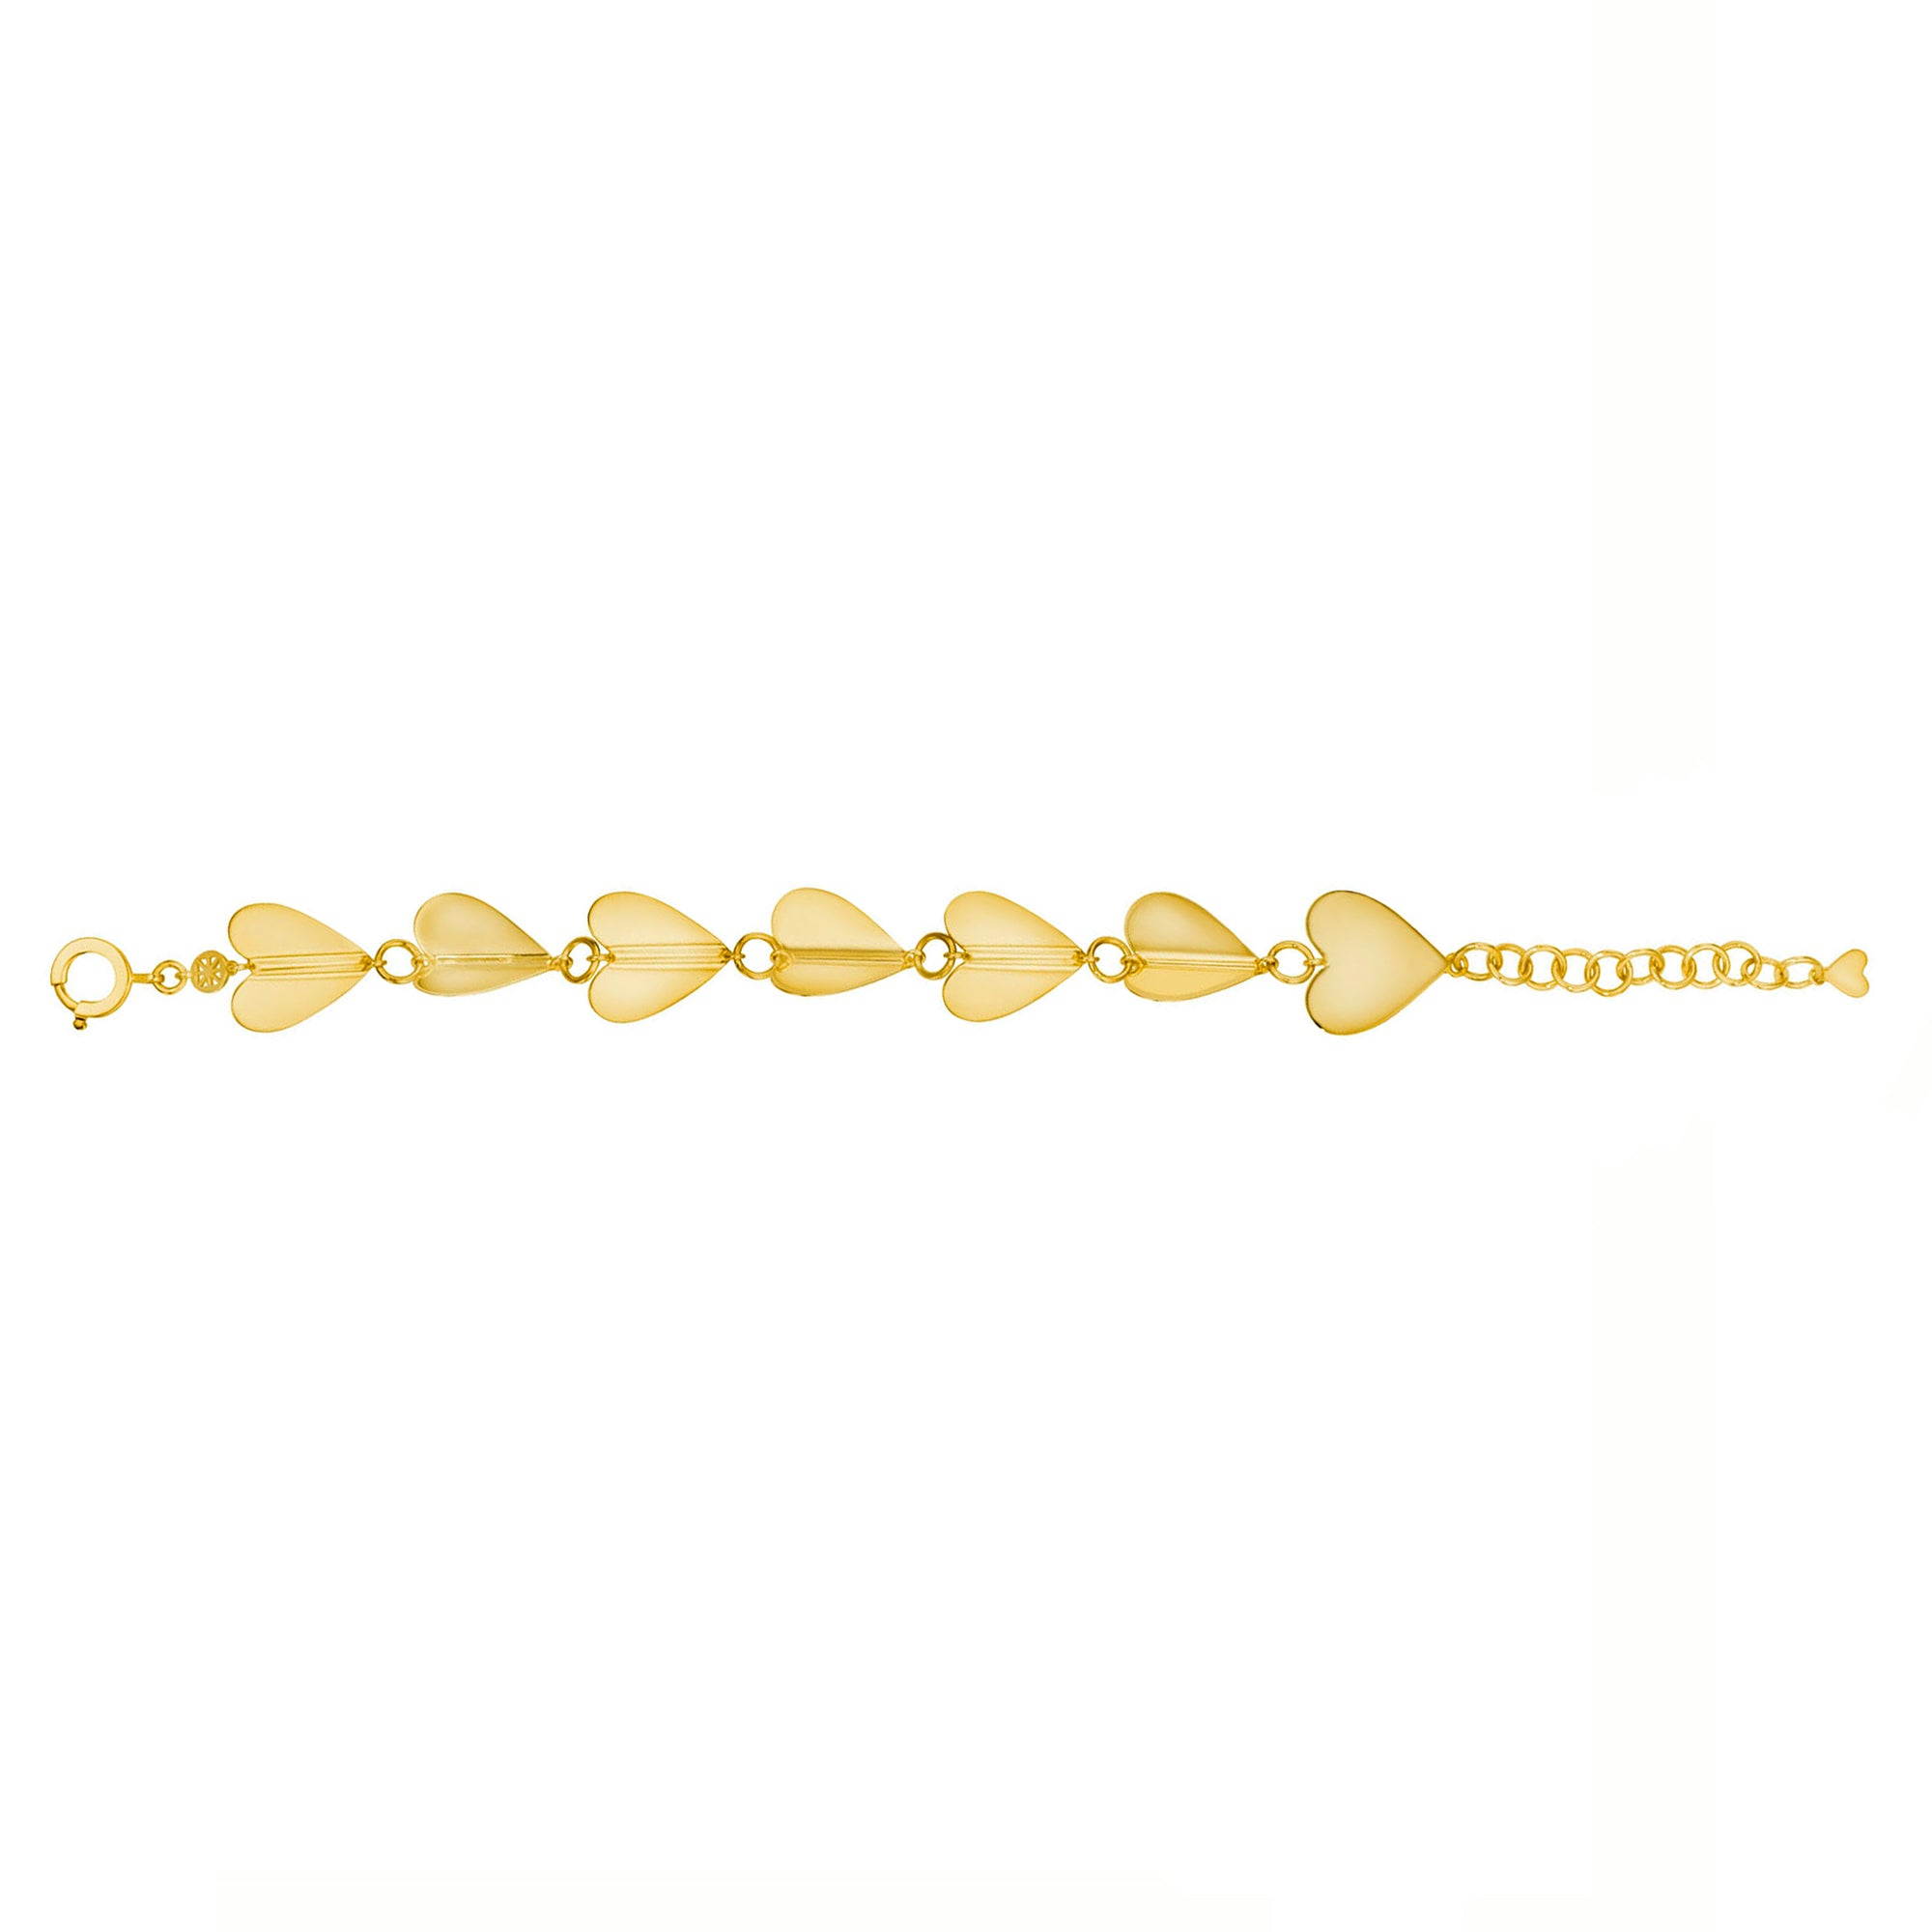 Cadar Wings of Love Bracelet - Gold (L) - Bracelets - Broken English Jewelry